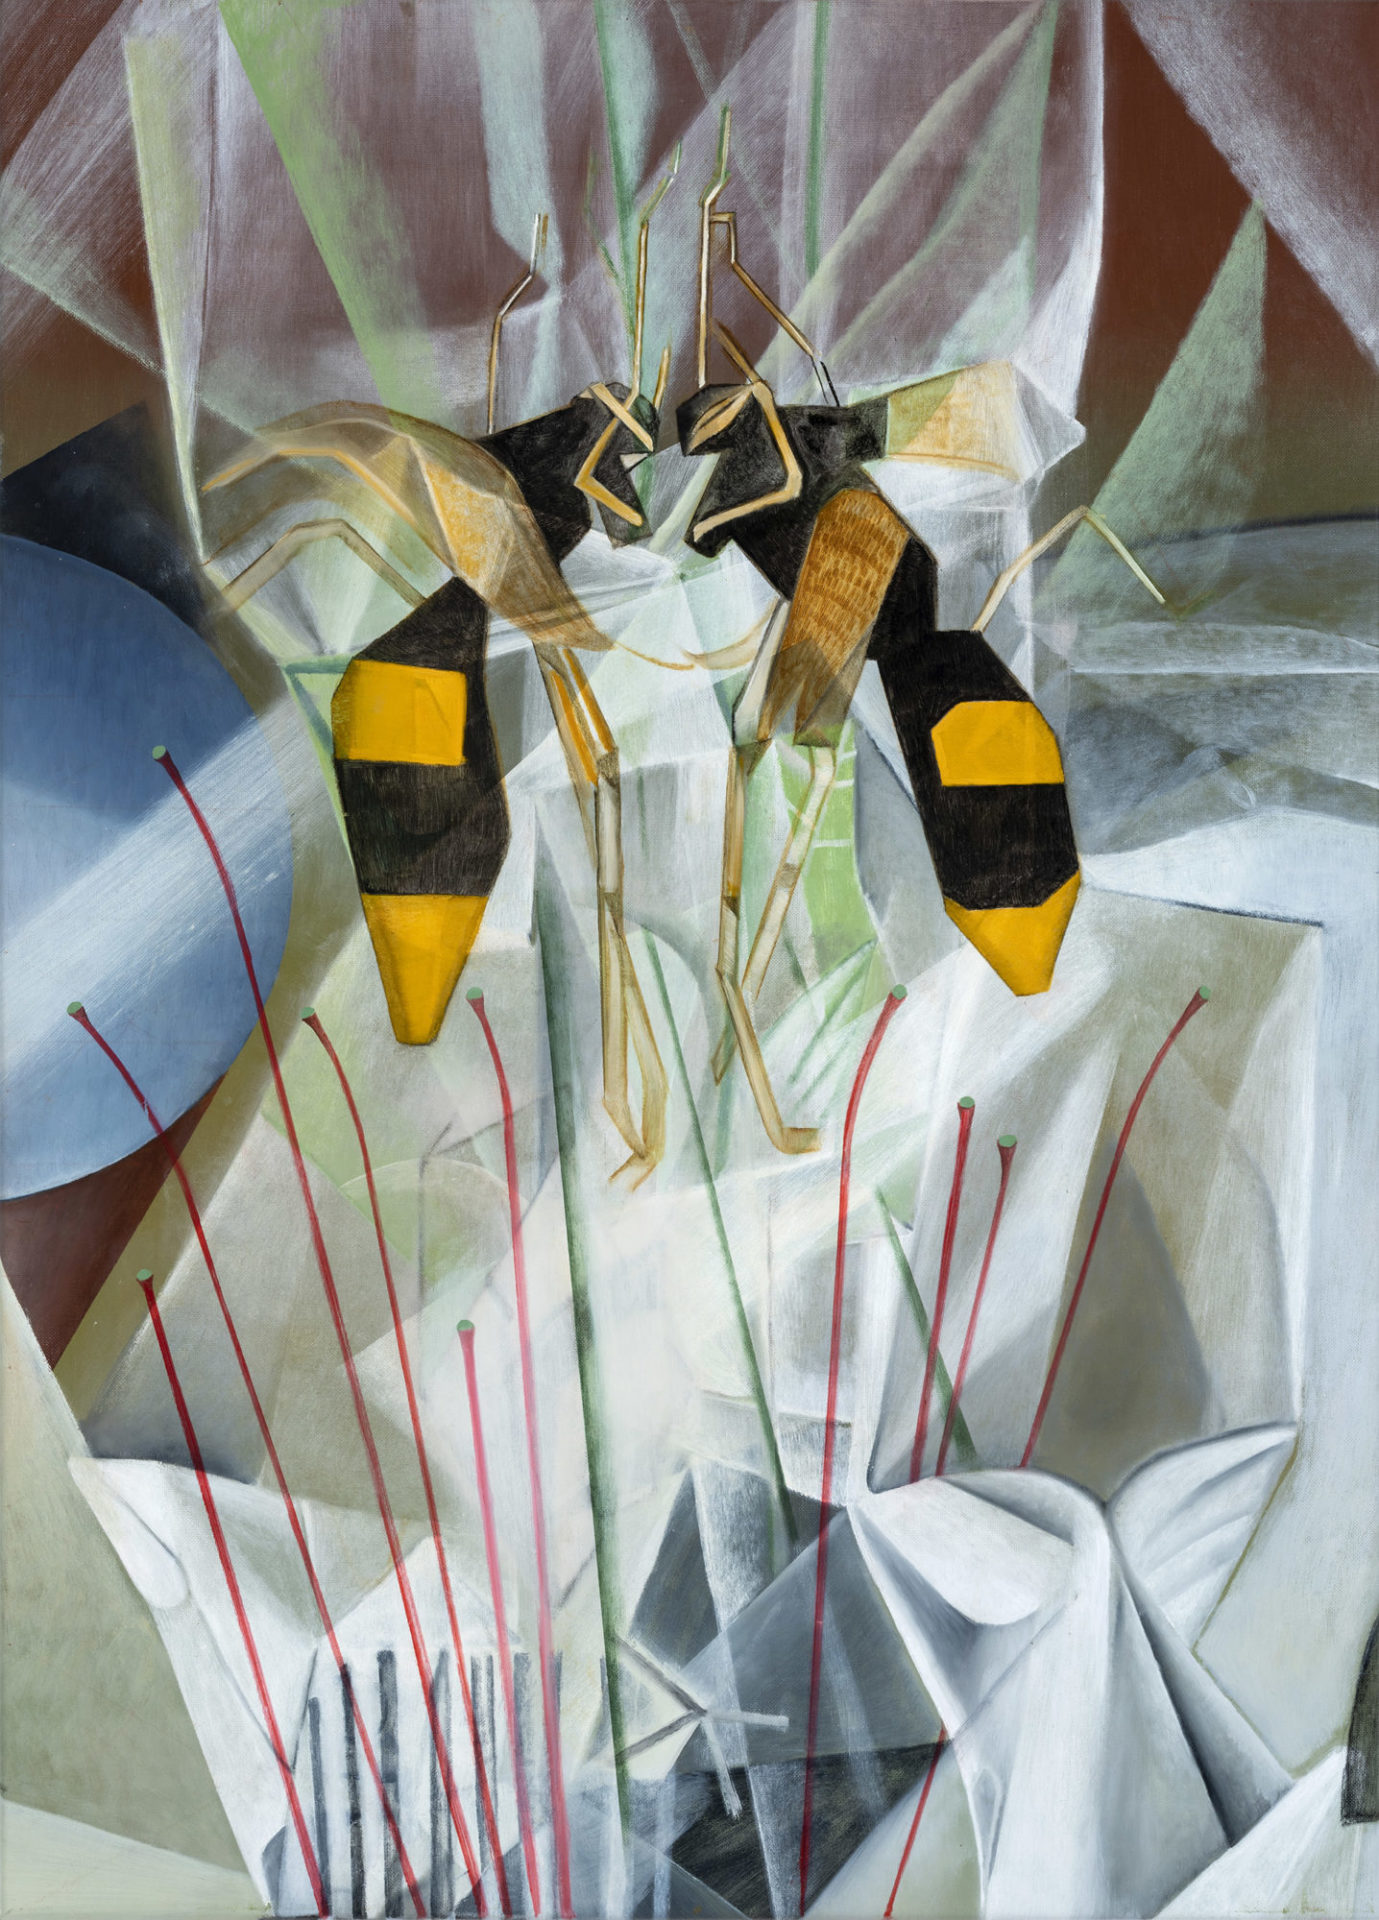 1. Window bandit is a painting of potters wasps by madeleine Kelly shown at Ipswich City Gallery Milani Gallery